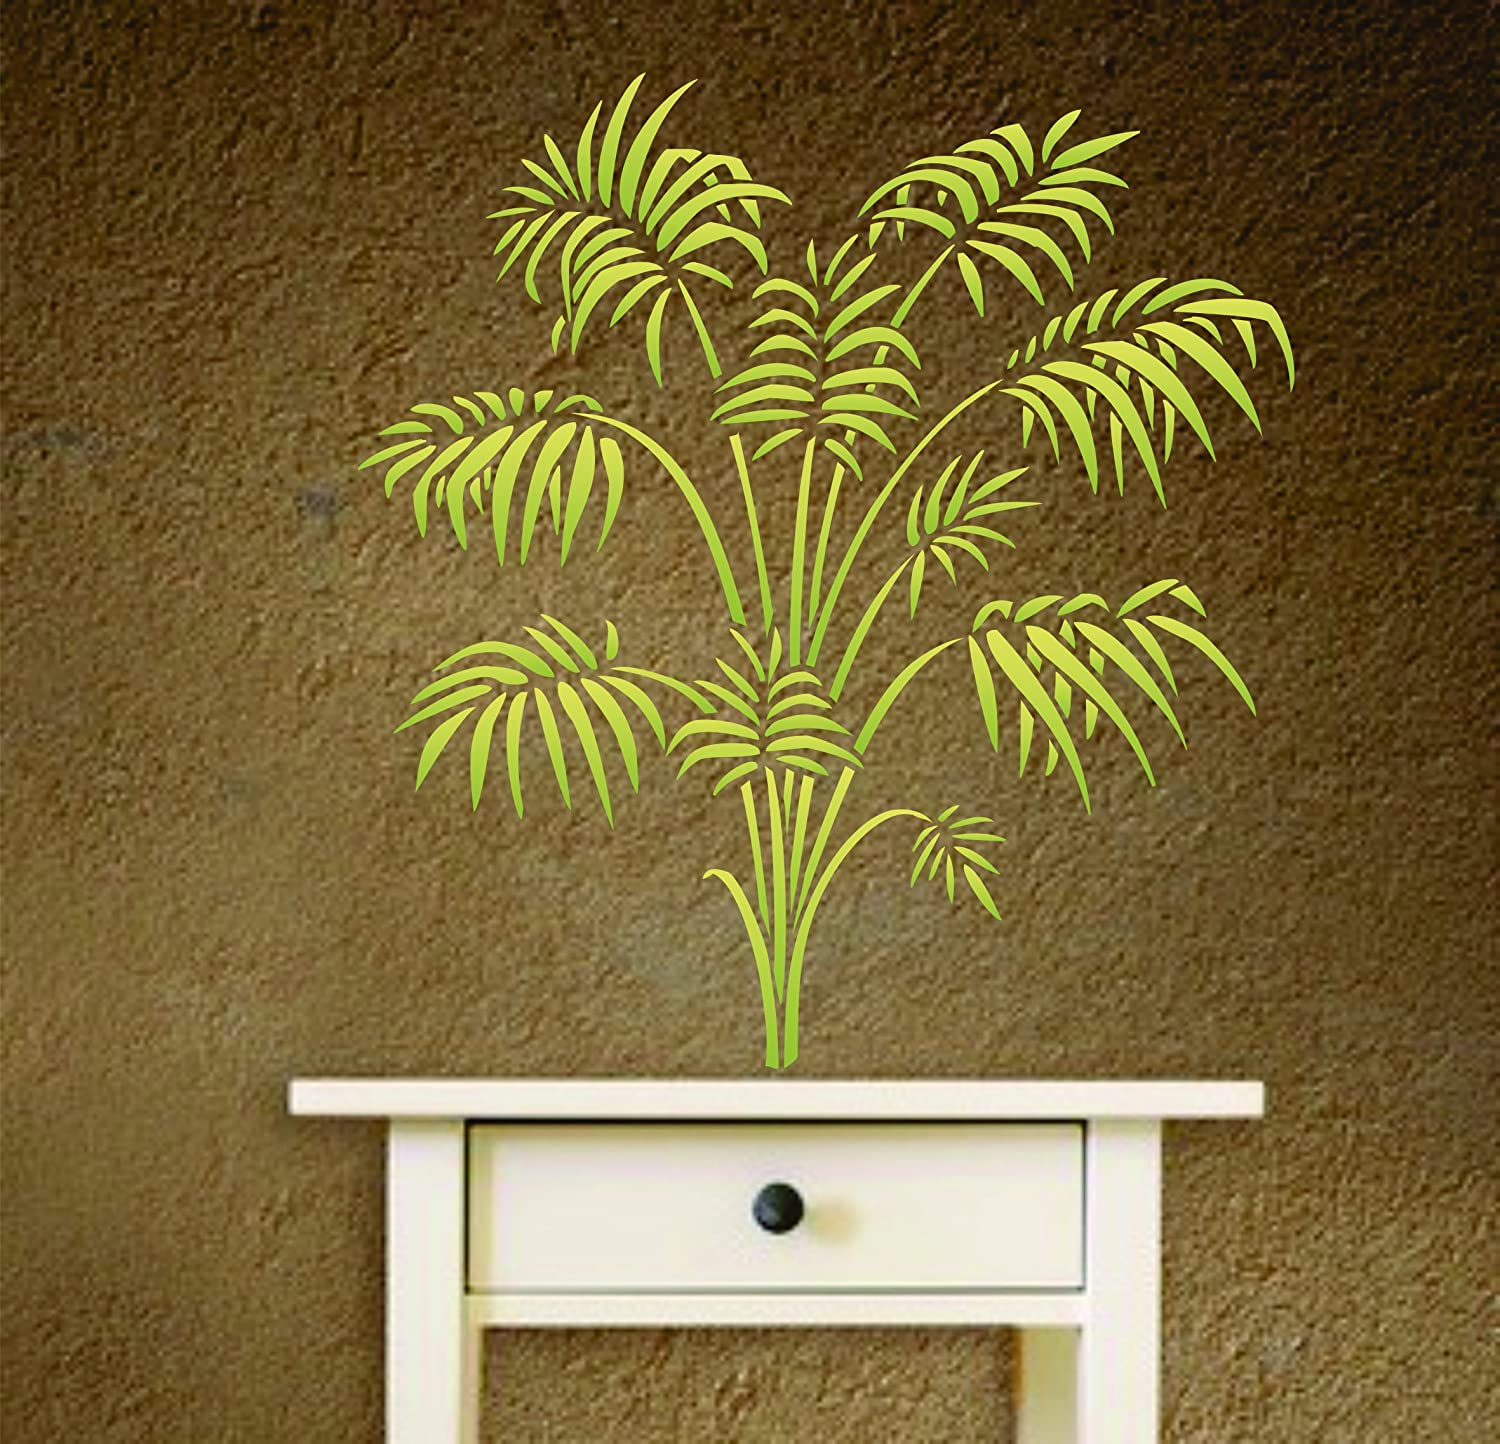 Amazon bamboo palm stencil size 13w x 14h reusable wall amazon bamboo palm stencil size 13w x 14h reusable wall stencils for painting best quality victorian parlor palm ideas use on walls floors amipublicfo Gallery